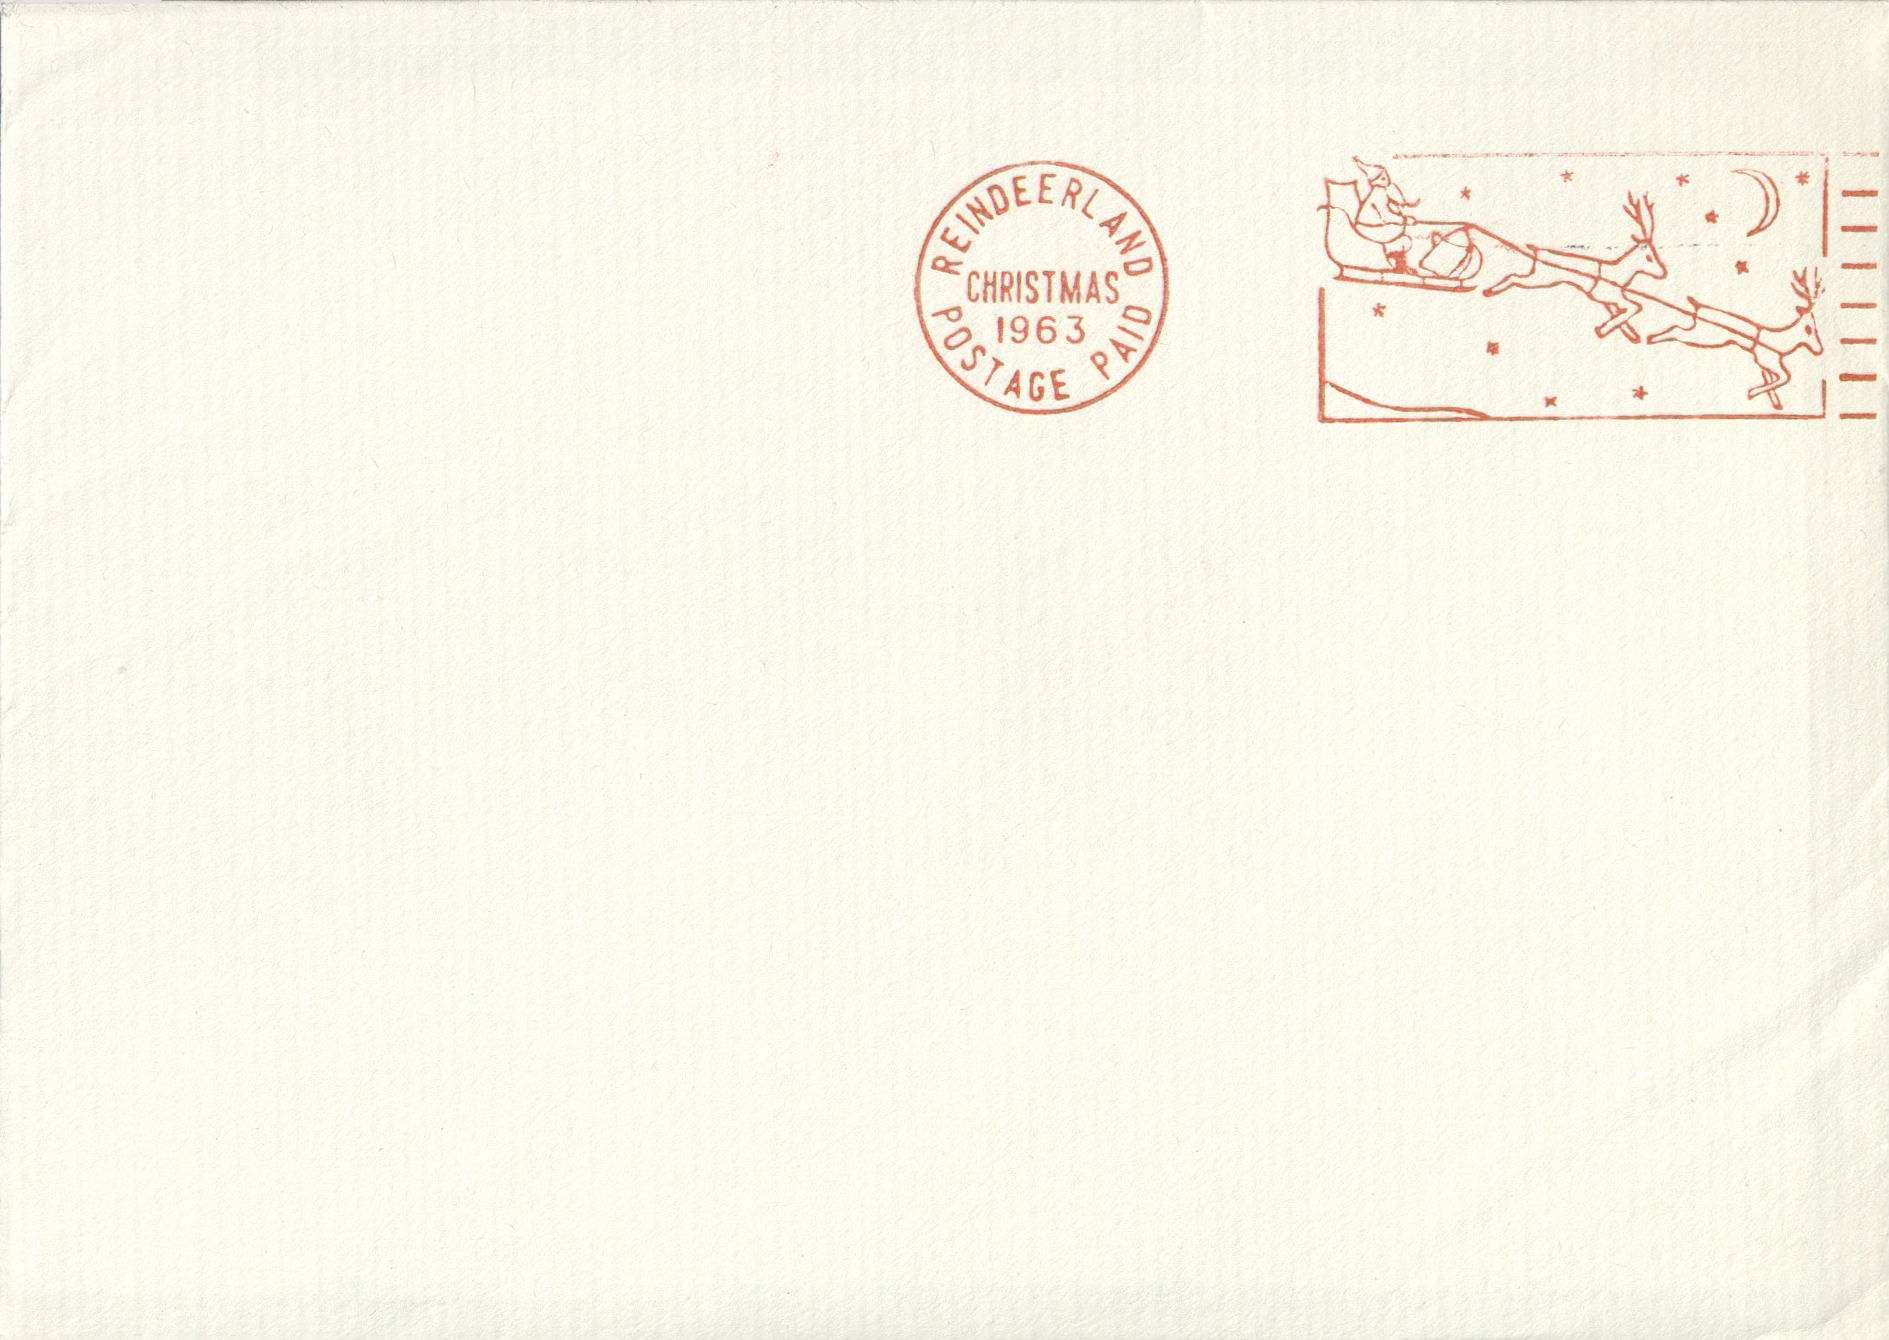 Reindeerland postmark 1963. © Royal Mail Group Ltd, courtesy of The British Postal Museum & Archive